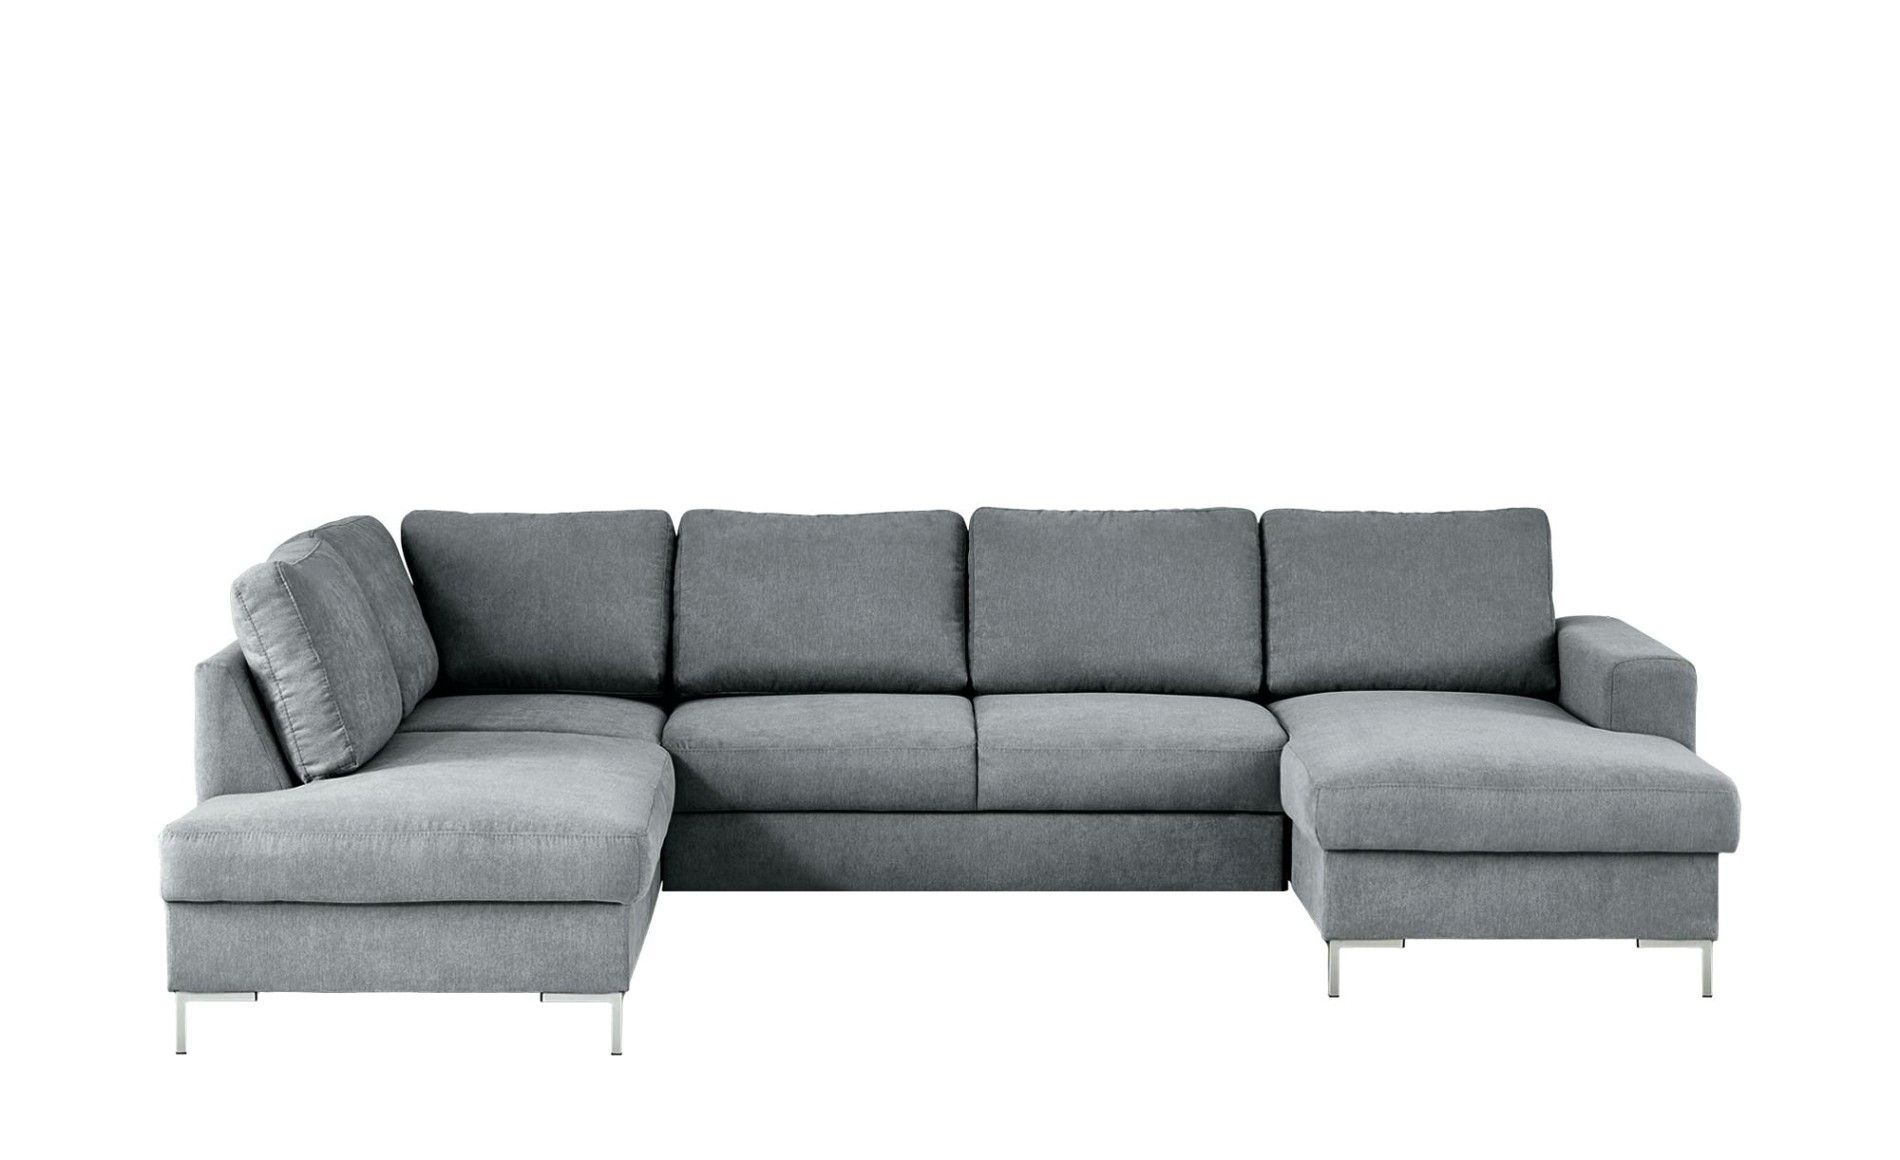 Brilliant Sofa Poco Domane In 2020 Big Sofas Modern Couch Couch